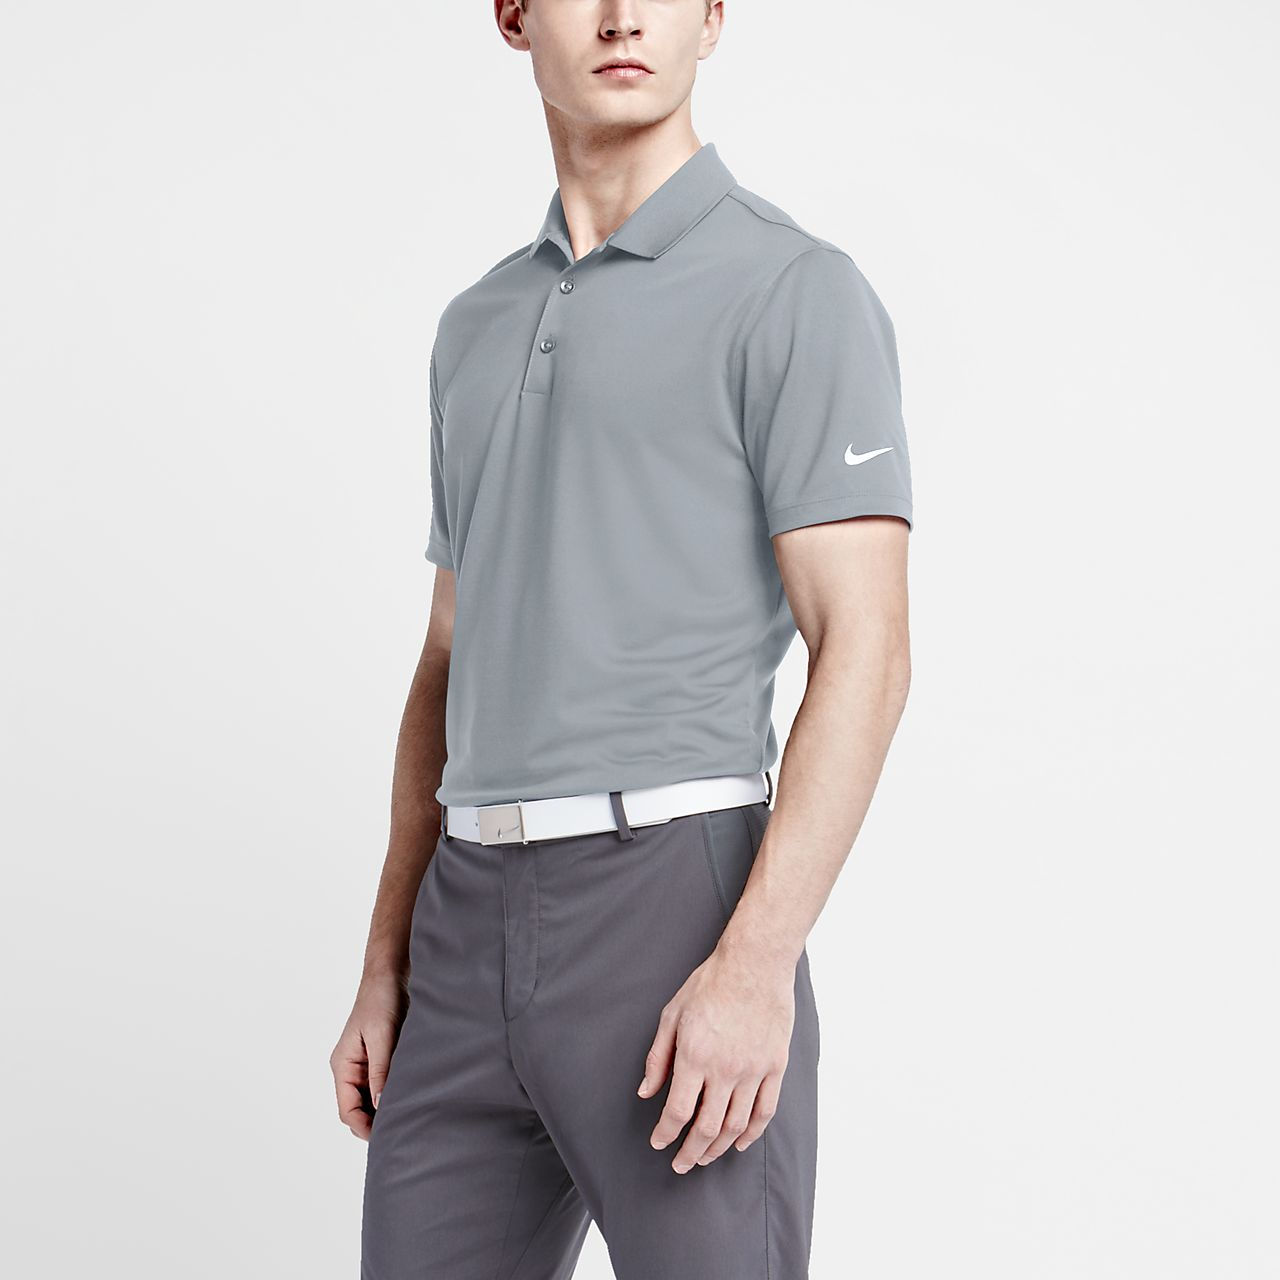 Nike Victory Solid Men's Standard Fit Golf Polo Shirts Wolf Grey/White